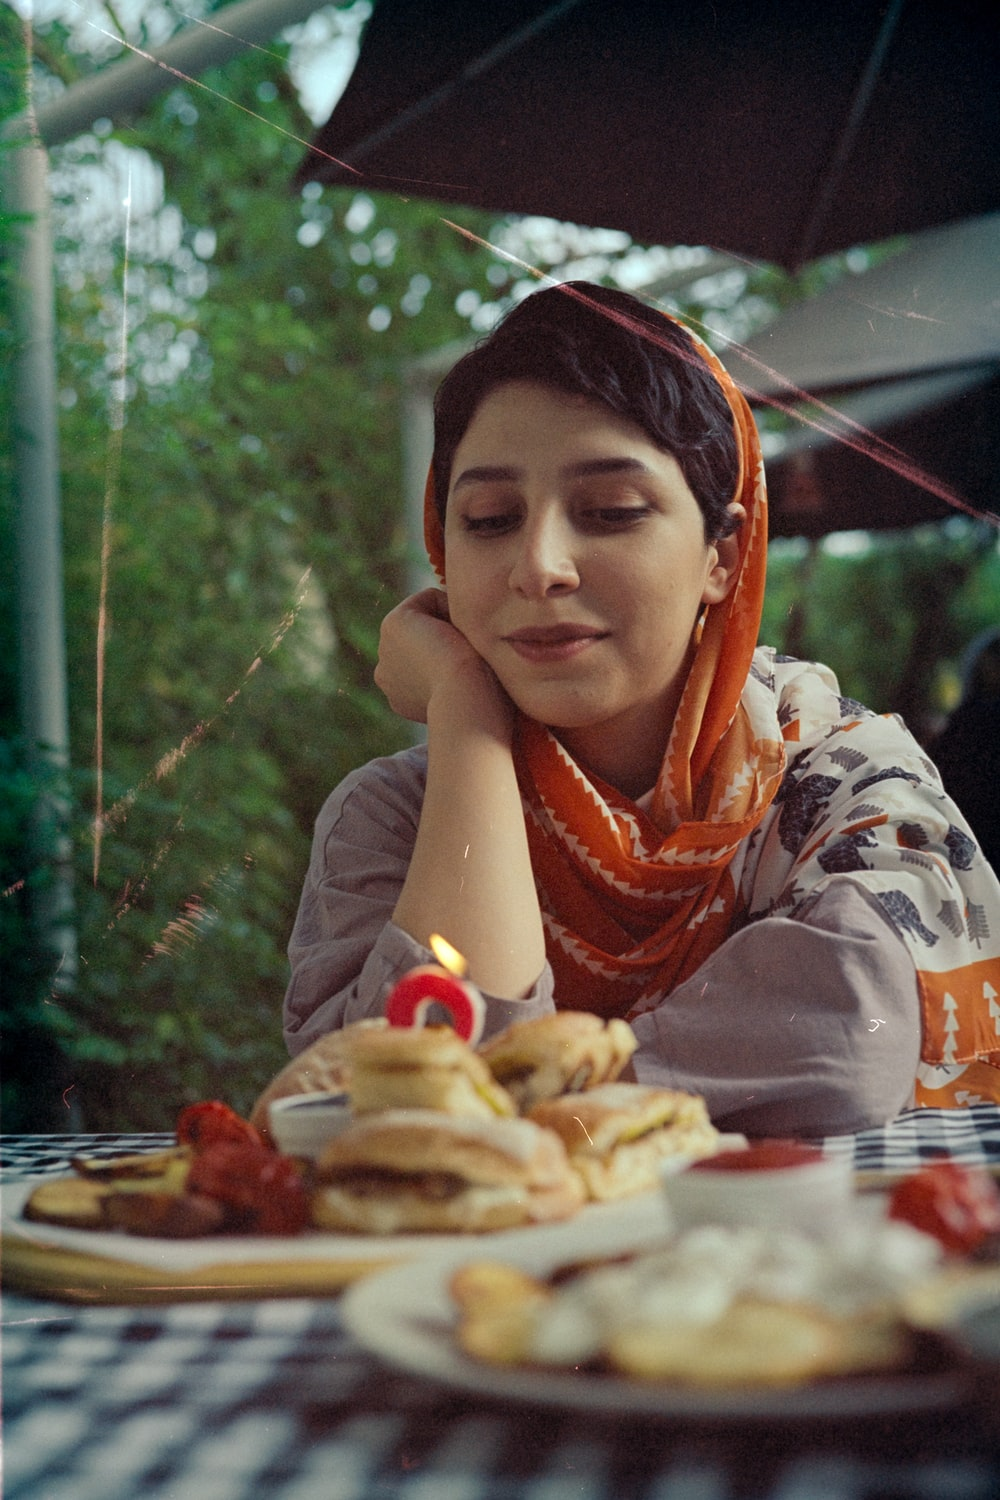 woman in white and brown long sleeve shirt eating burger